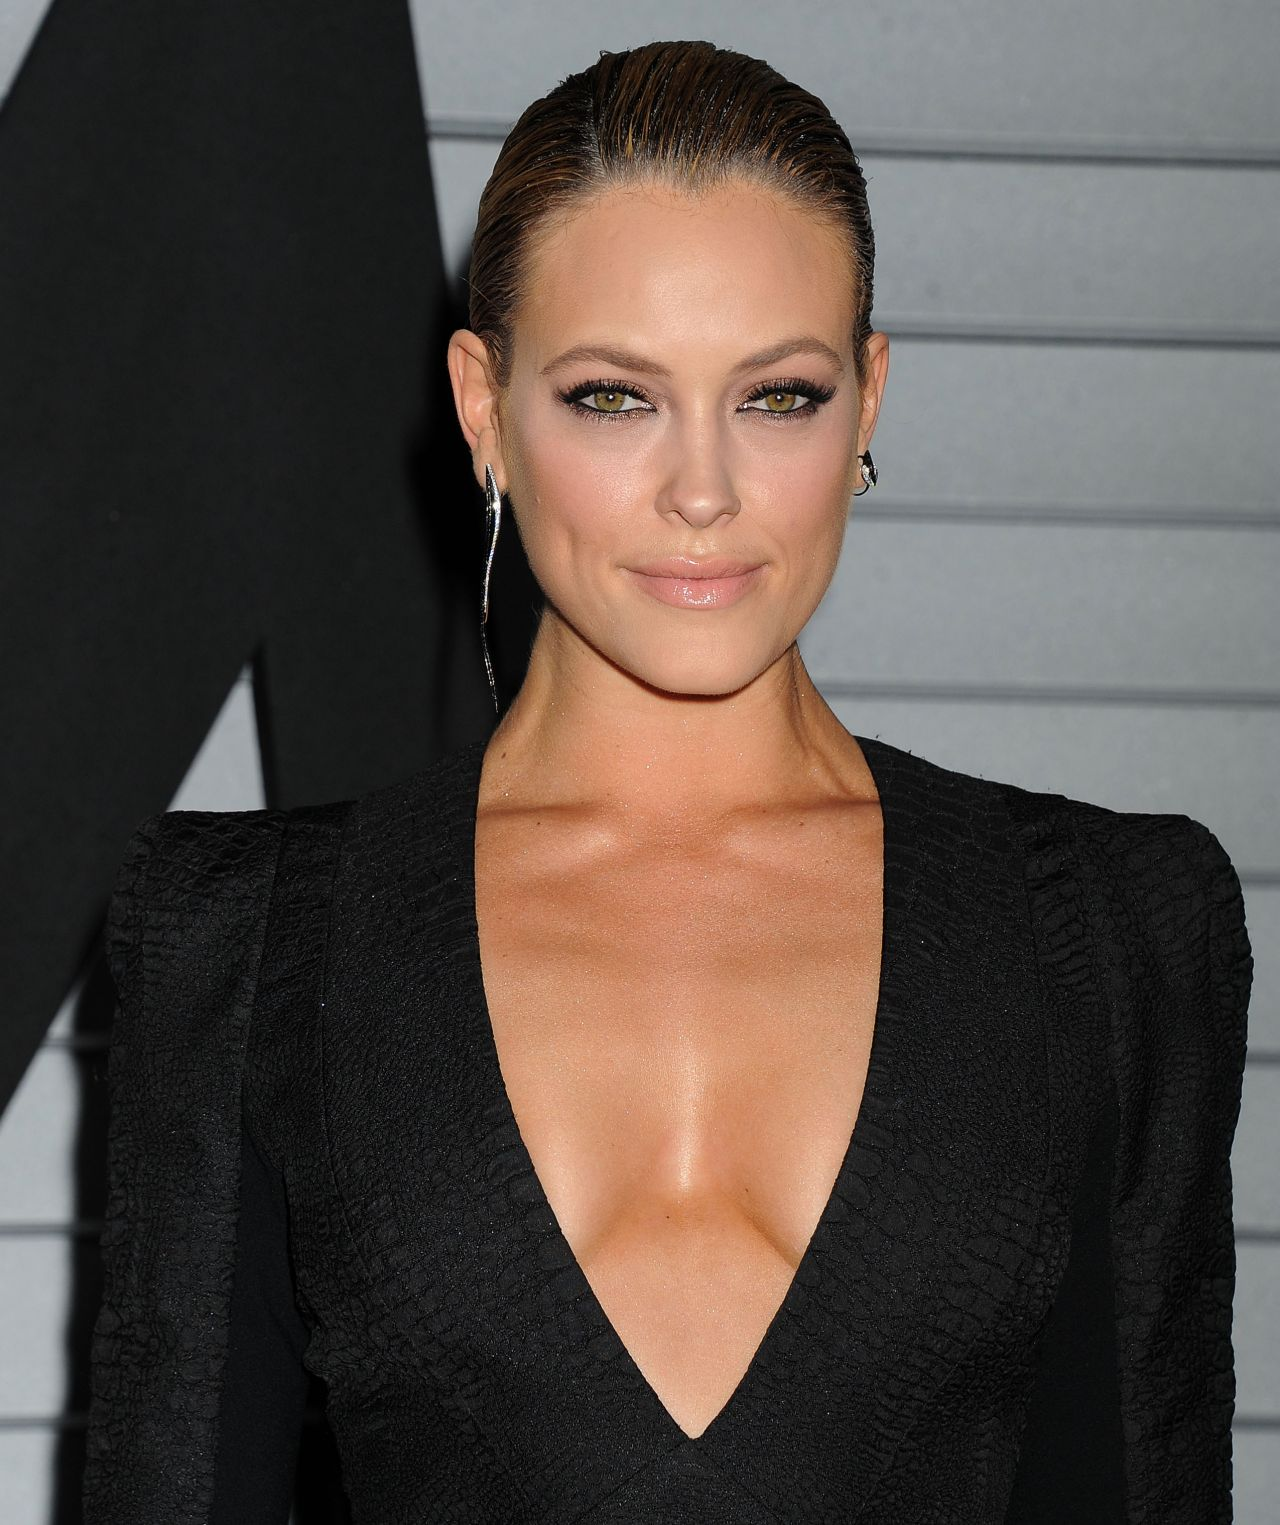 Peta Murgatroyd Net Worth